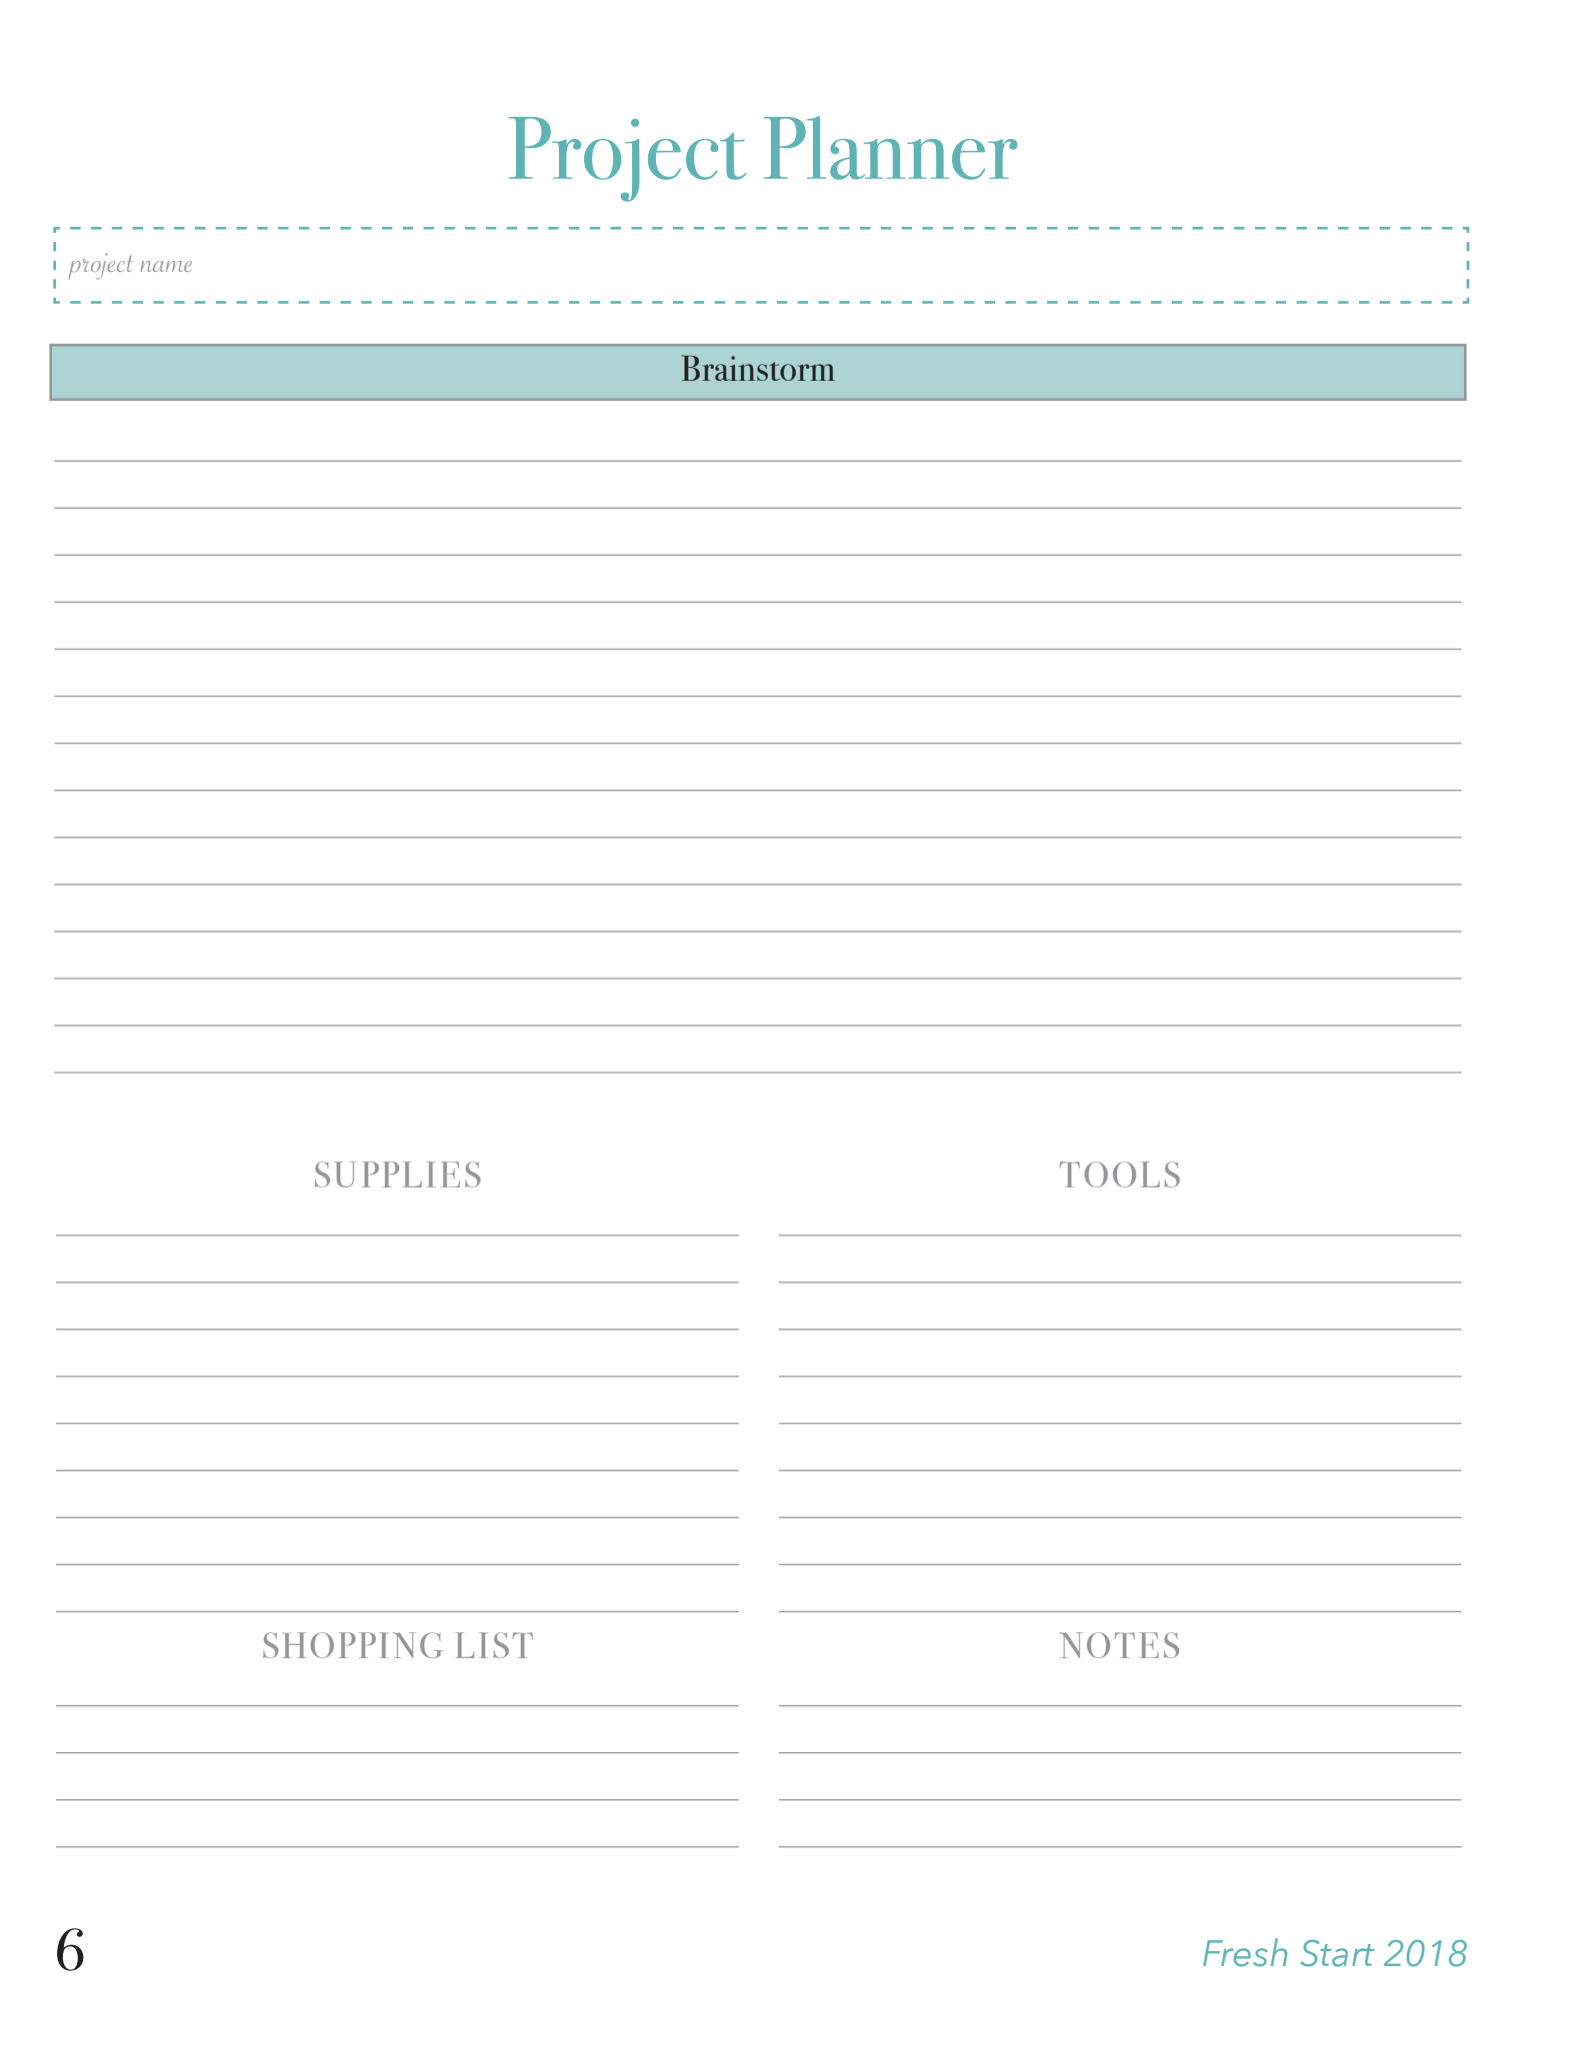 Project Planner Page